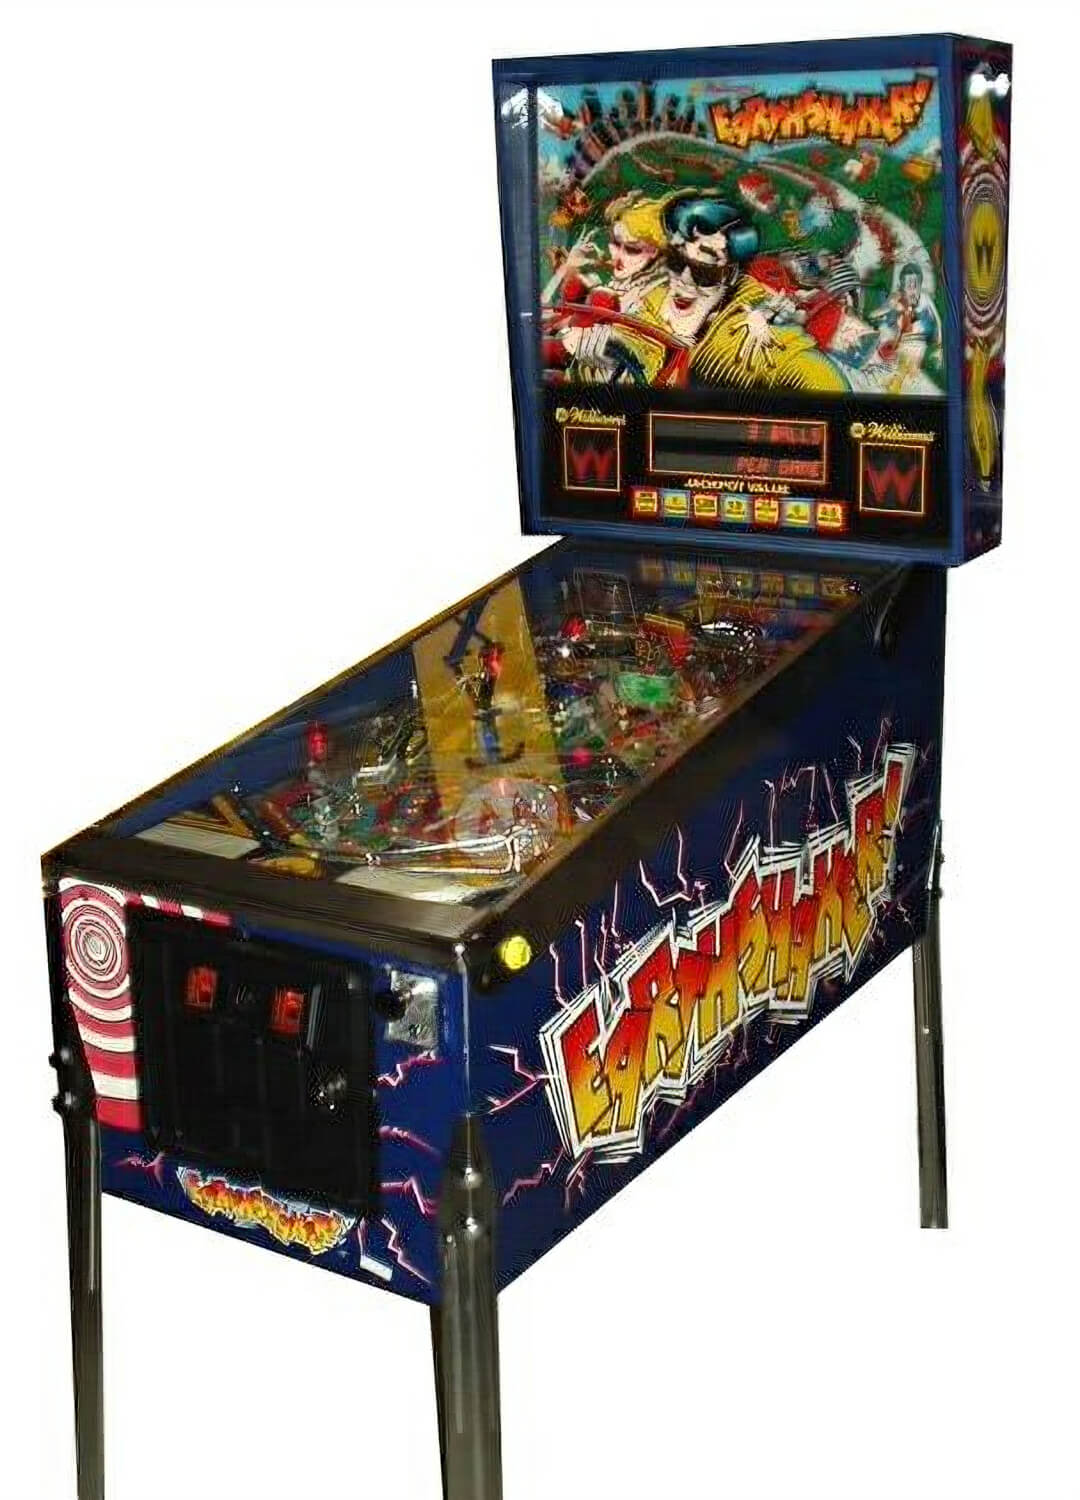 IMAGE(http://www.libertygames.co.uk/images/1/products/4841_earthshaker-pinball.jpg)